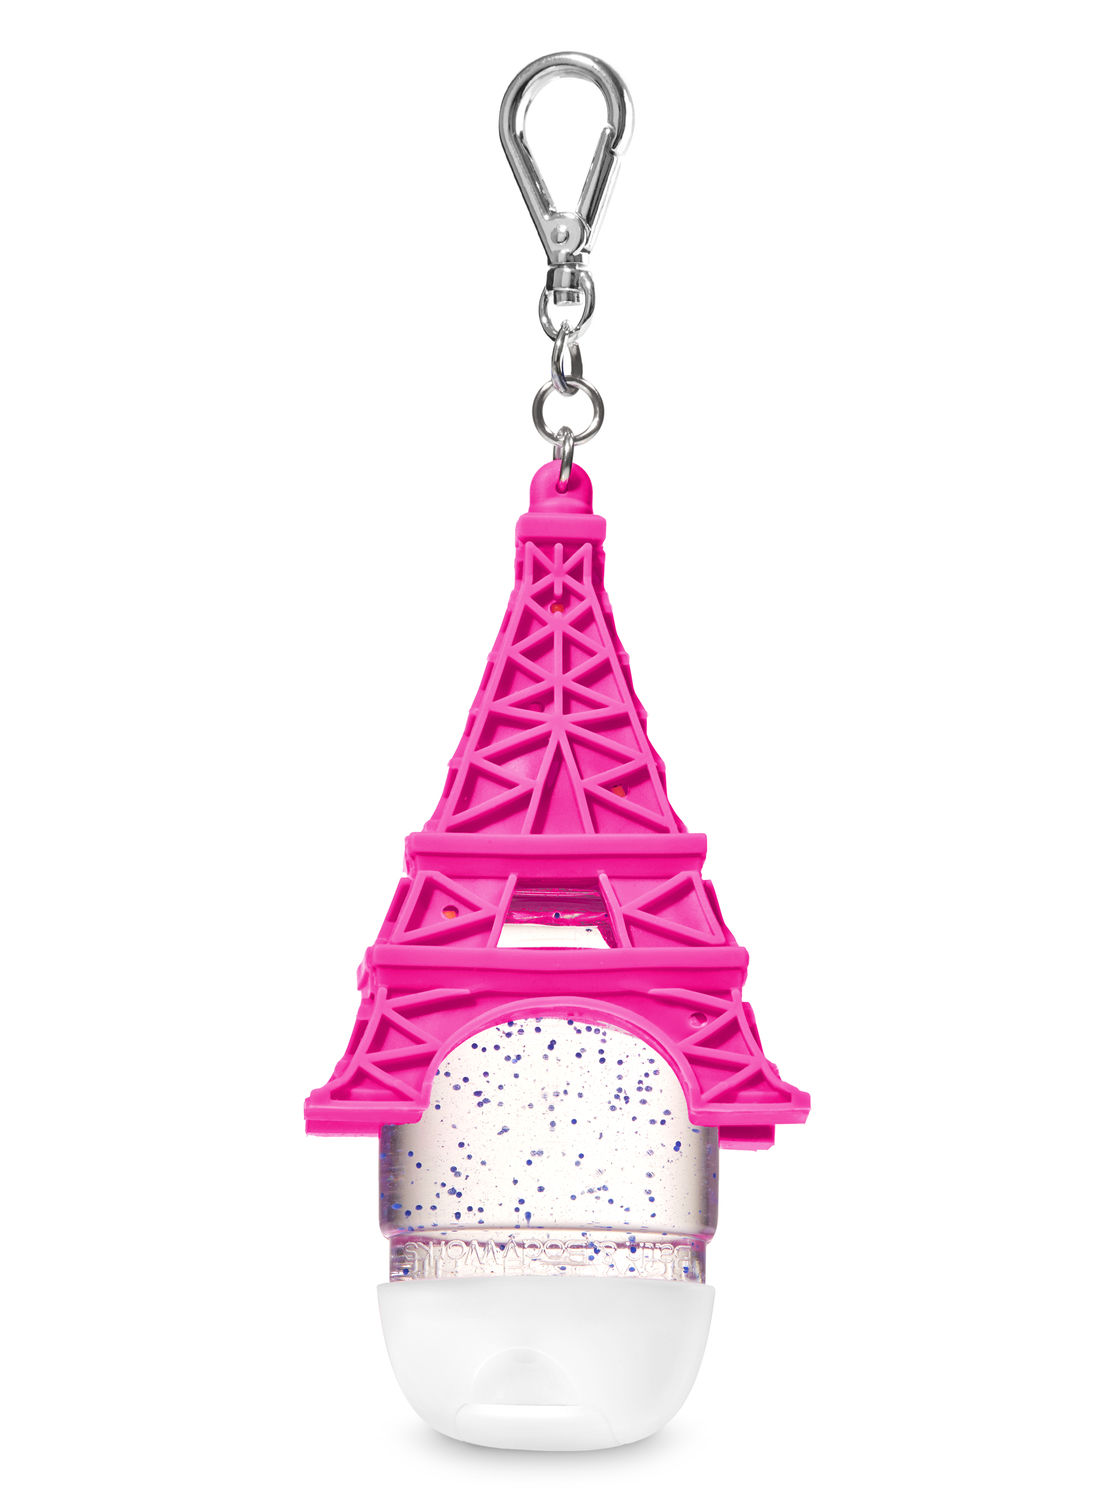 Eiffel Tower Light Up Pocketbac Holder By Bath Body Works